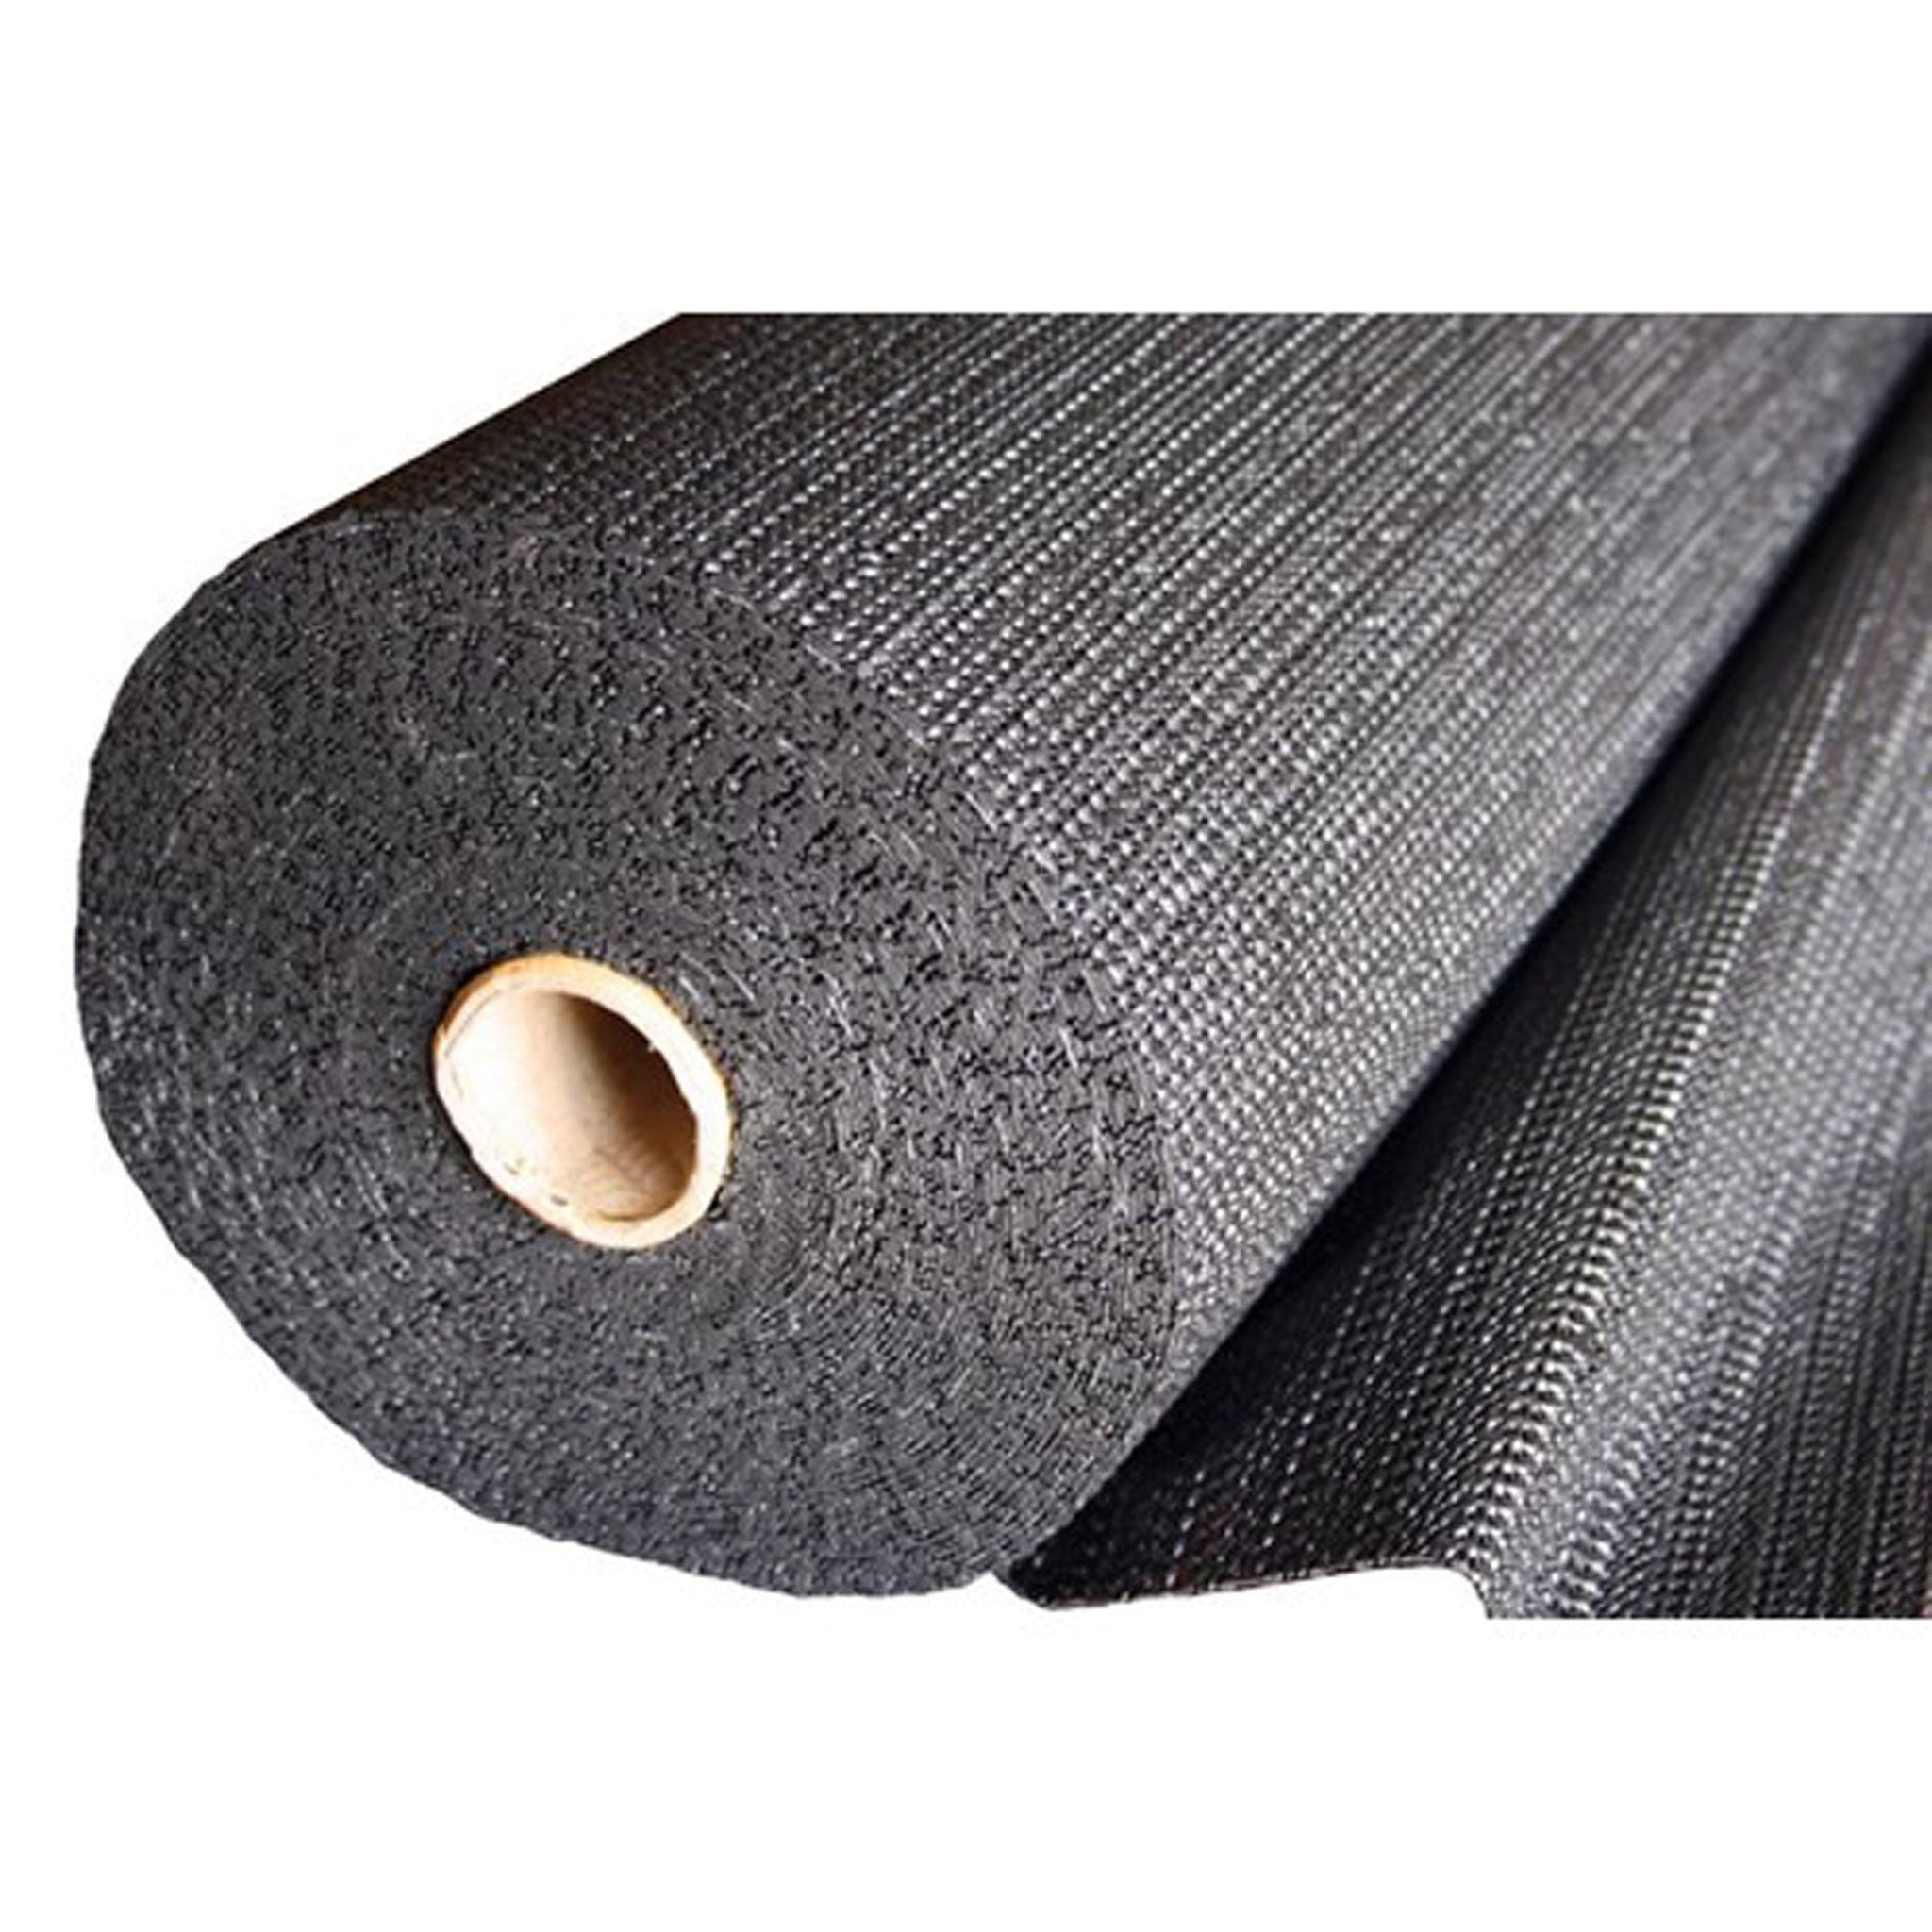 Non-Skid Matting Black 910 mm Wide Per 30 m Roll - Arthur Beale